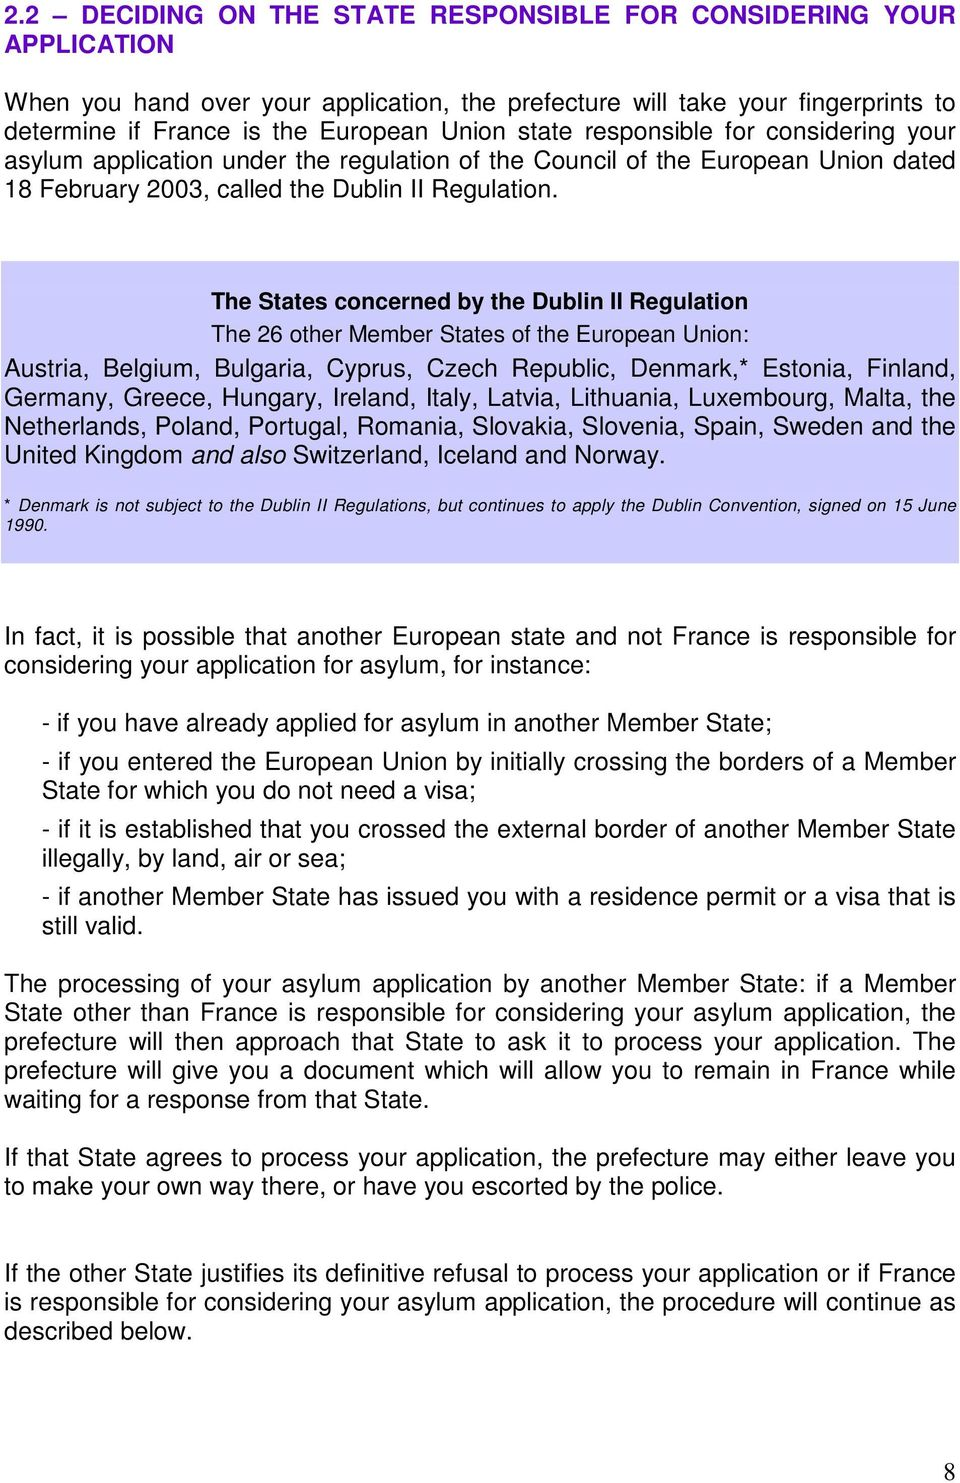 The States concerned by the Dublin II Regulation The 26 other Member States of the European Union: Austria, Belgium, Bulgaria, Cyprus, Czech Republic, Denmark,* Estonia, Finland, Germany, Greece,